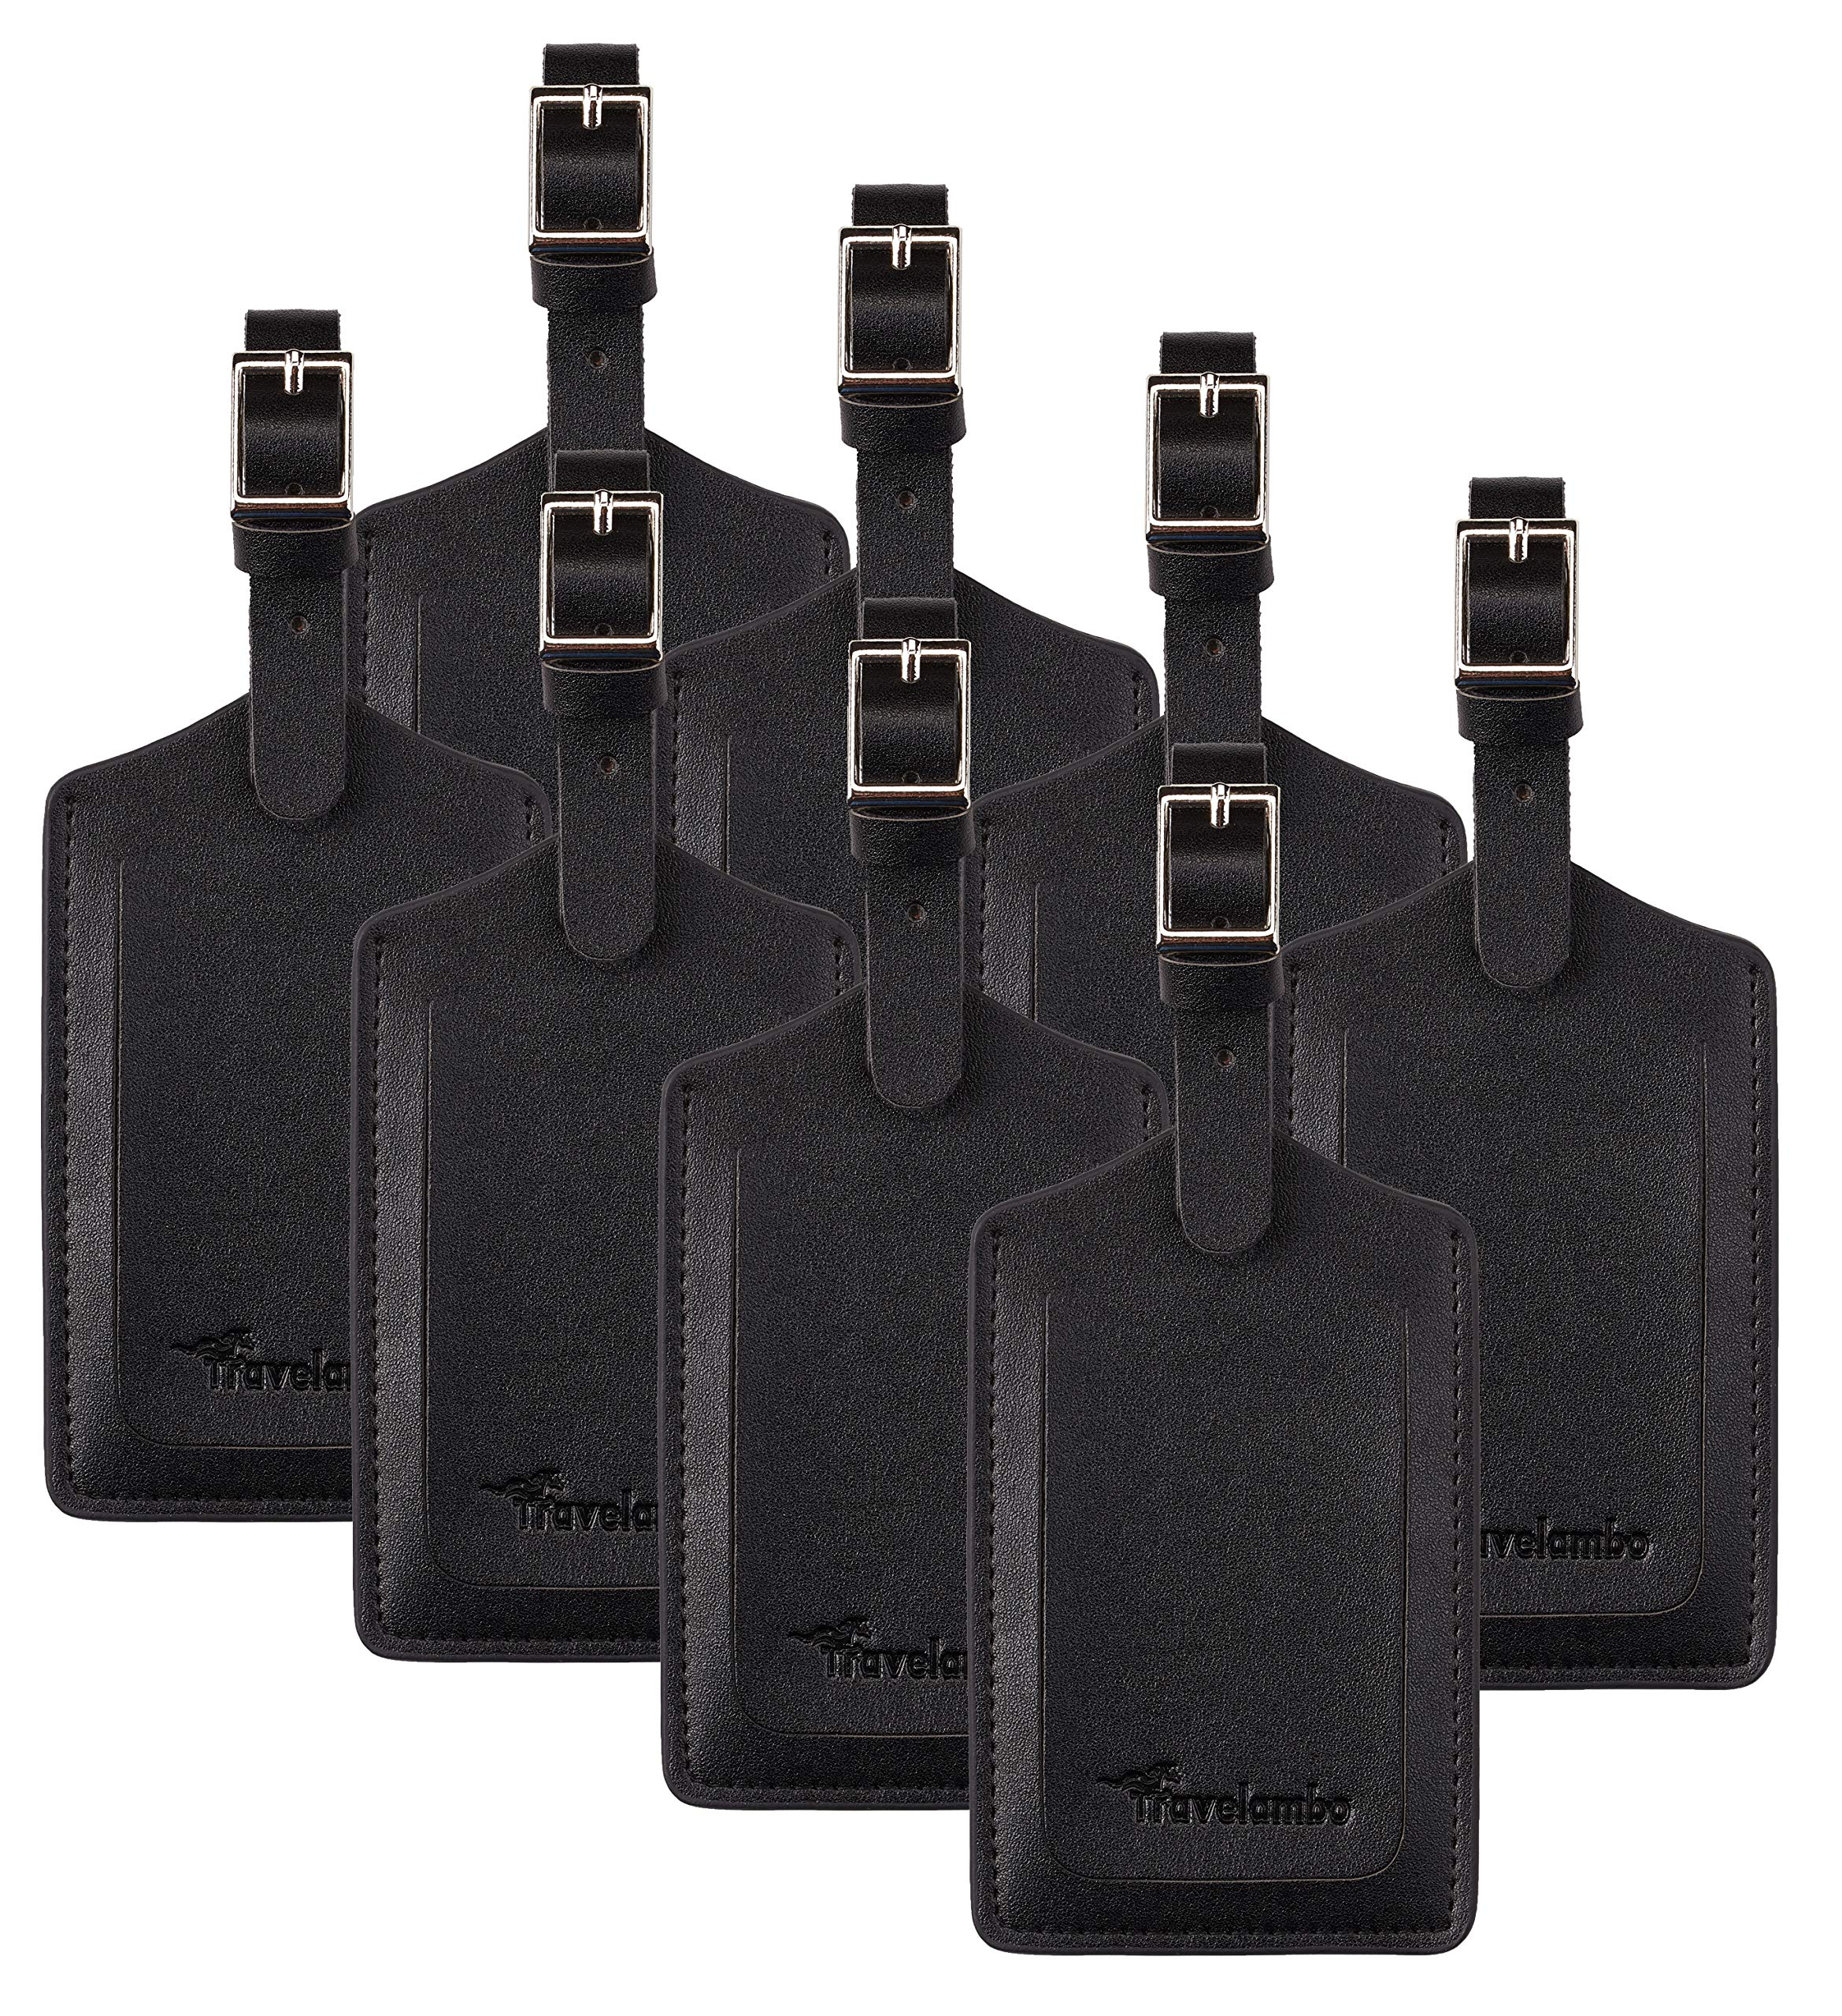 8 Pack Leather Luggage Travel Bag Tags by Travelambo Black by Travelambo